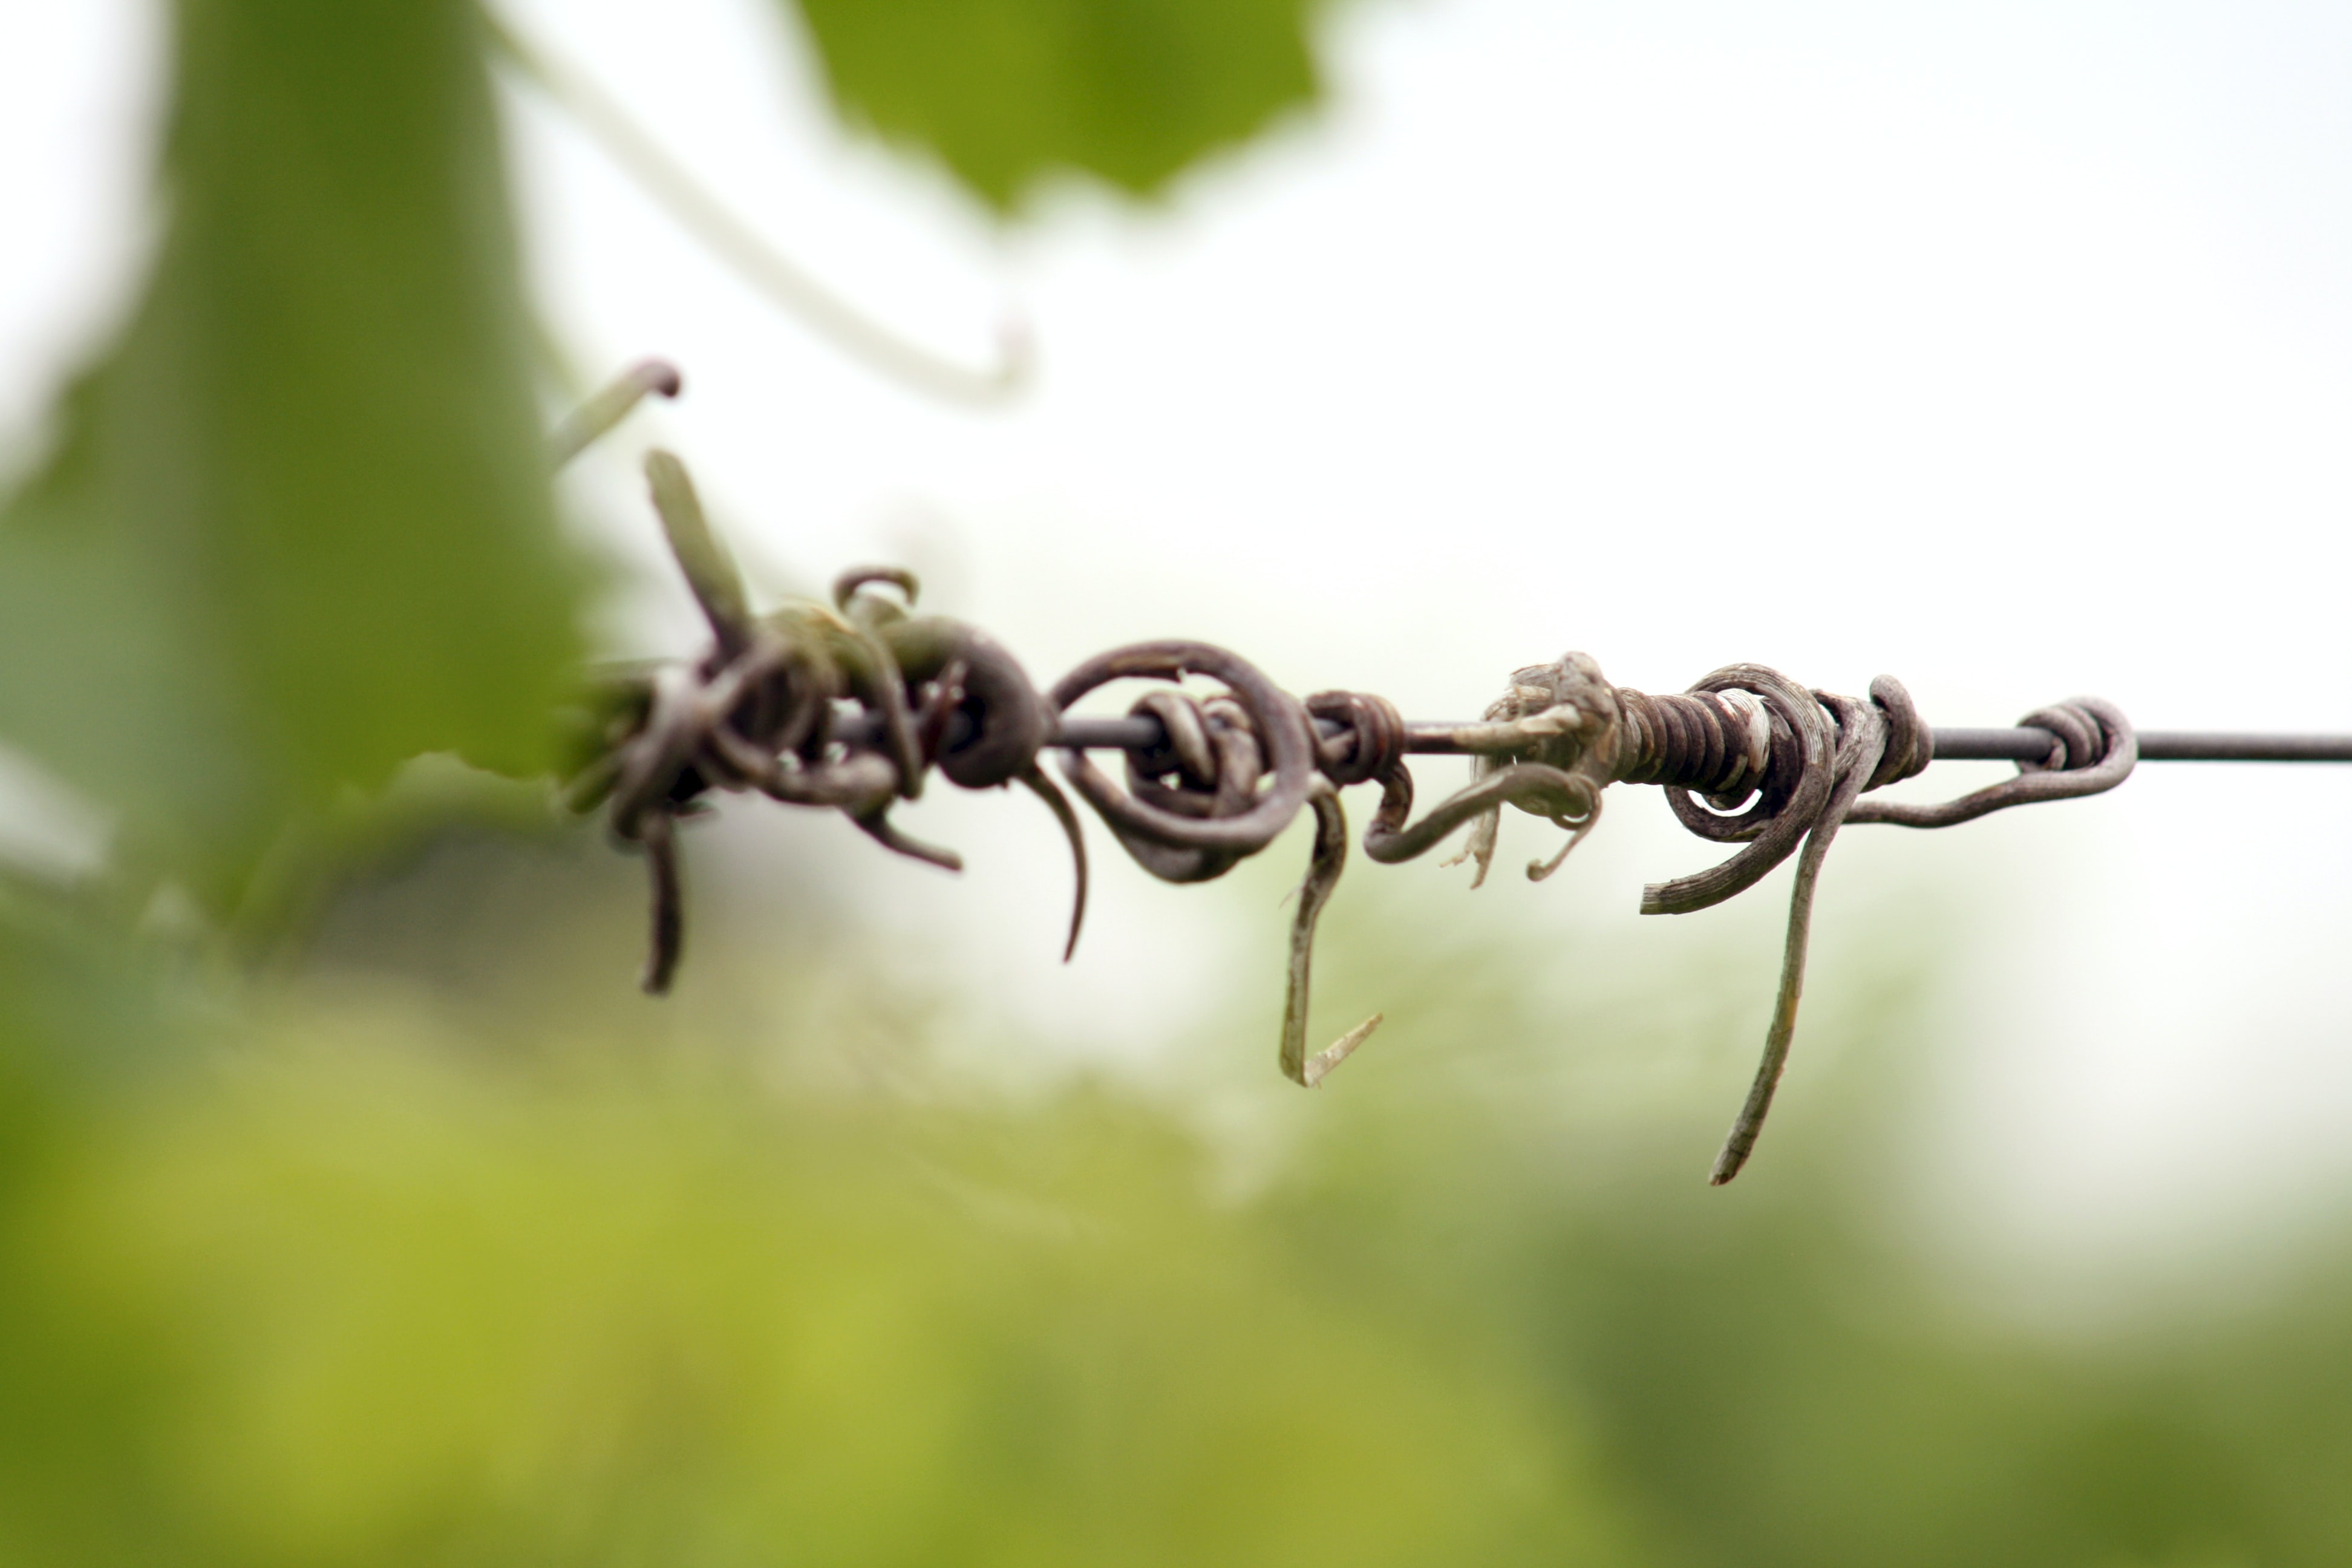 shallow focus photography of vines on steel wire